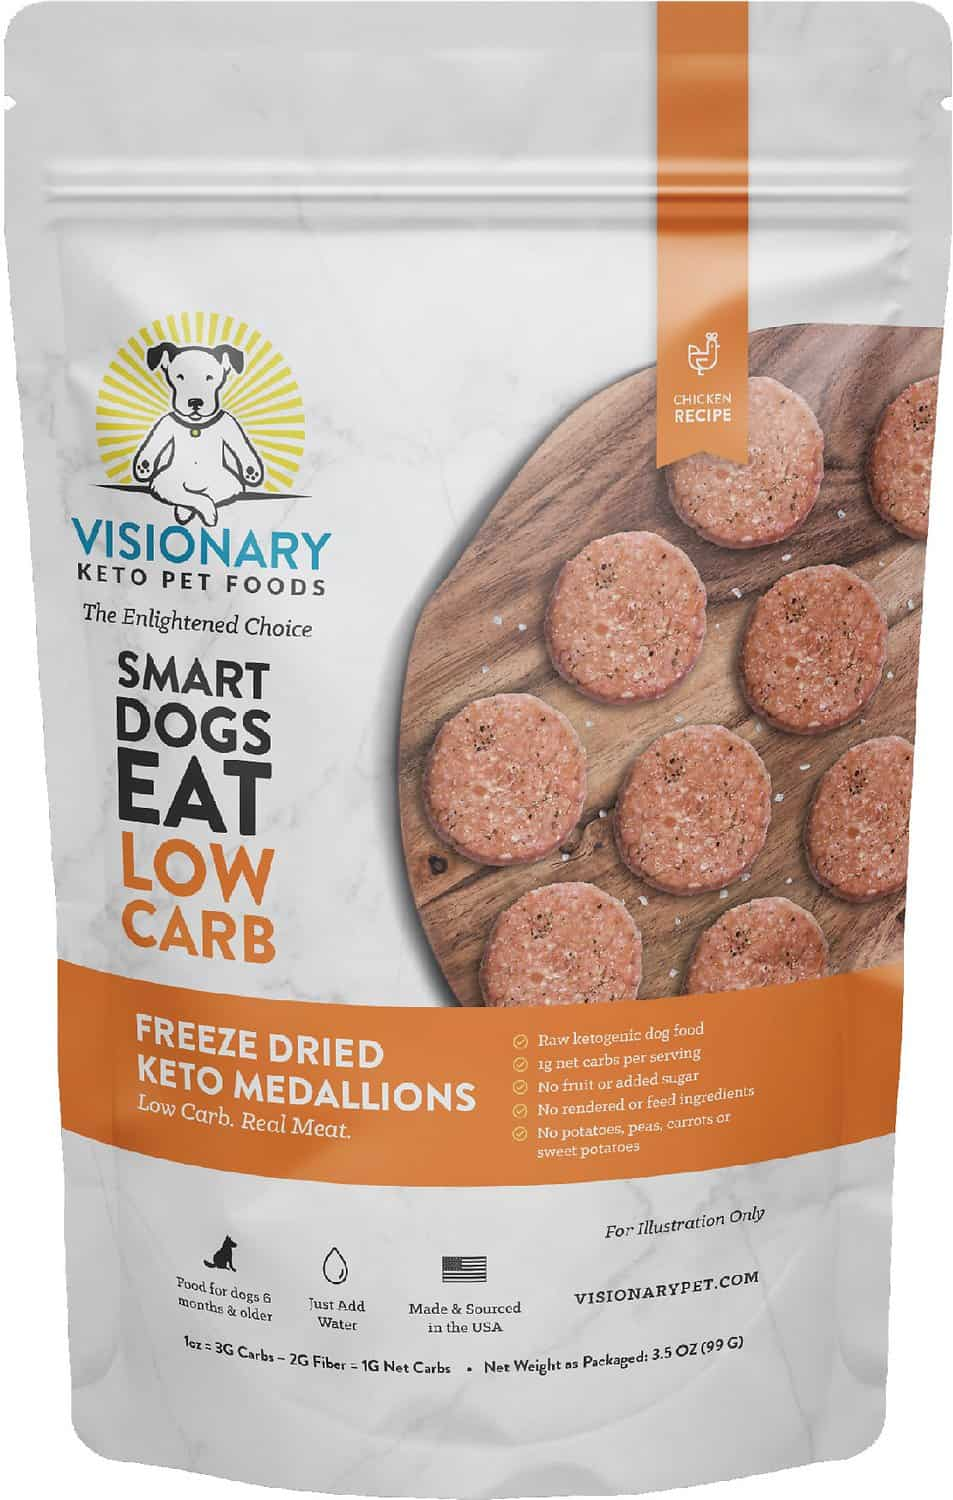 Valiant Dog Food (Now Visionary): [year] Reviews & Coupons 15